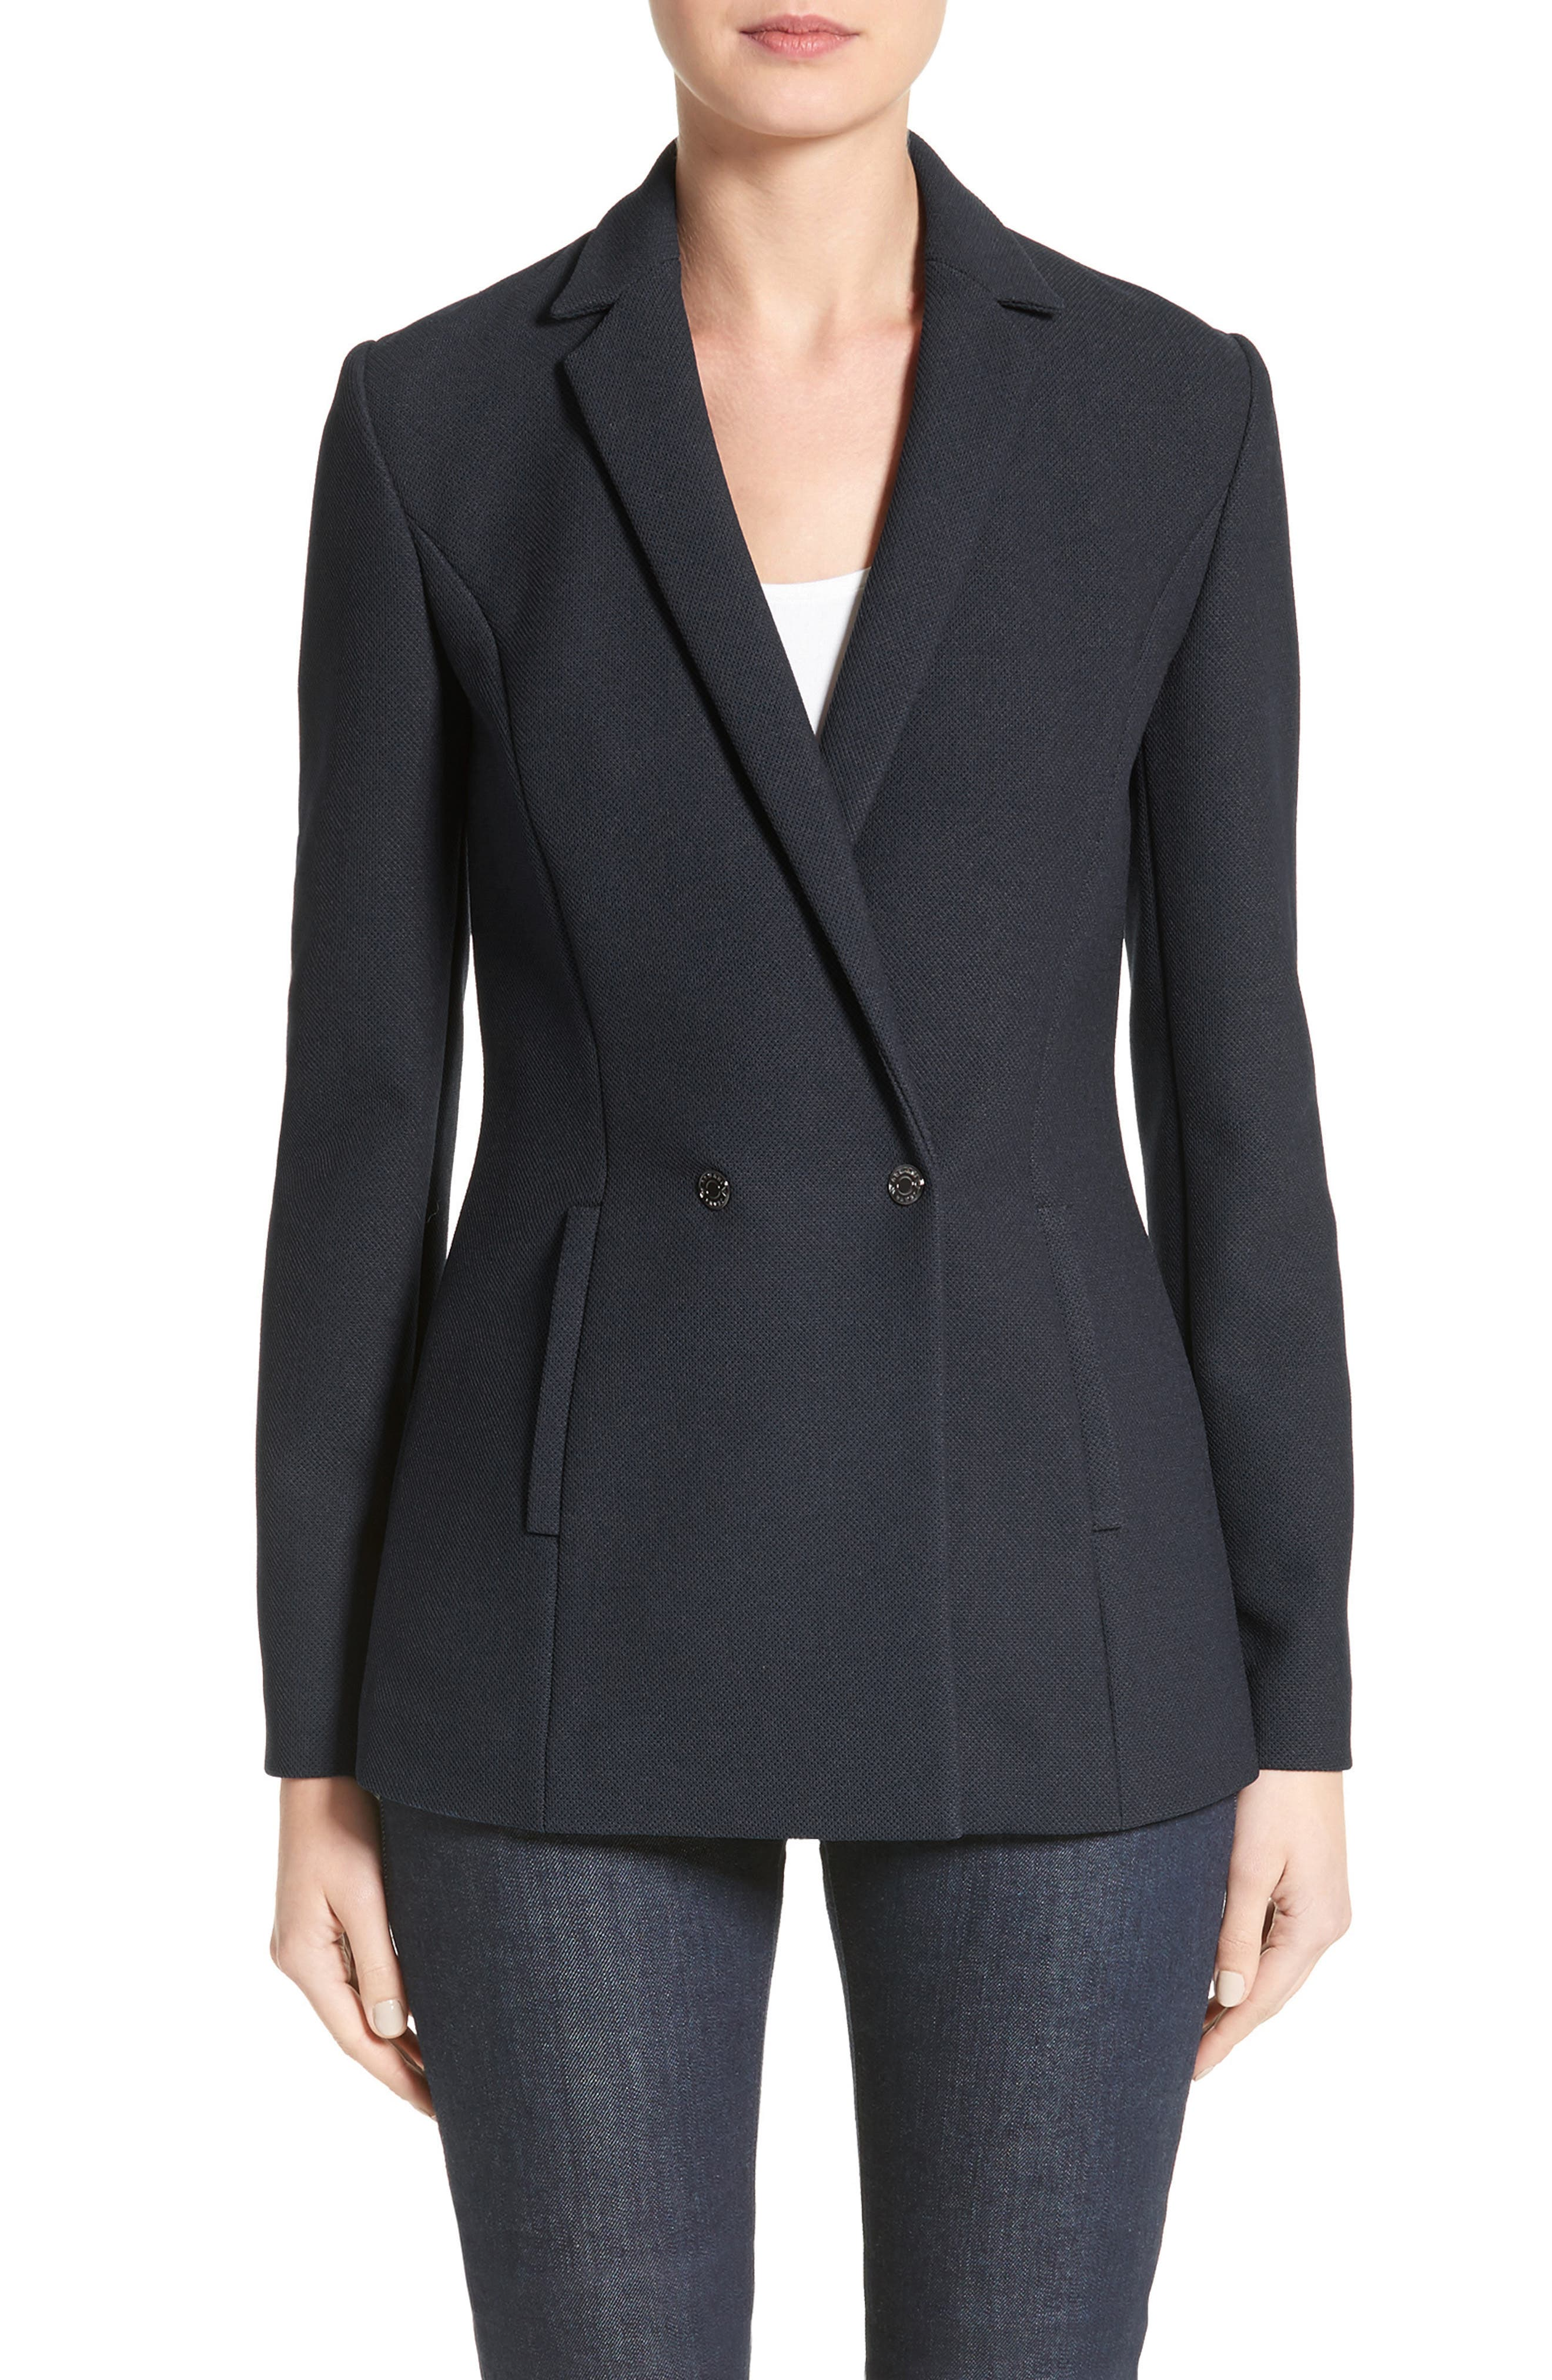 Armani Jeans Piqué Double Breasted Blazer,                             Main thumbnail 1, color,                             Navy